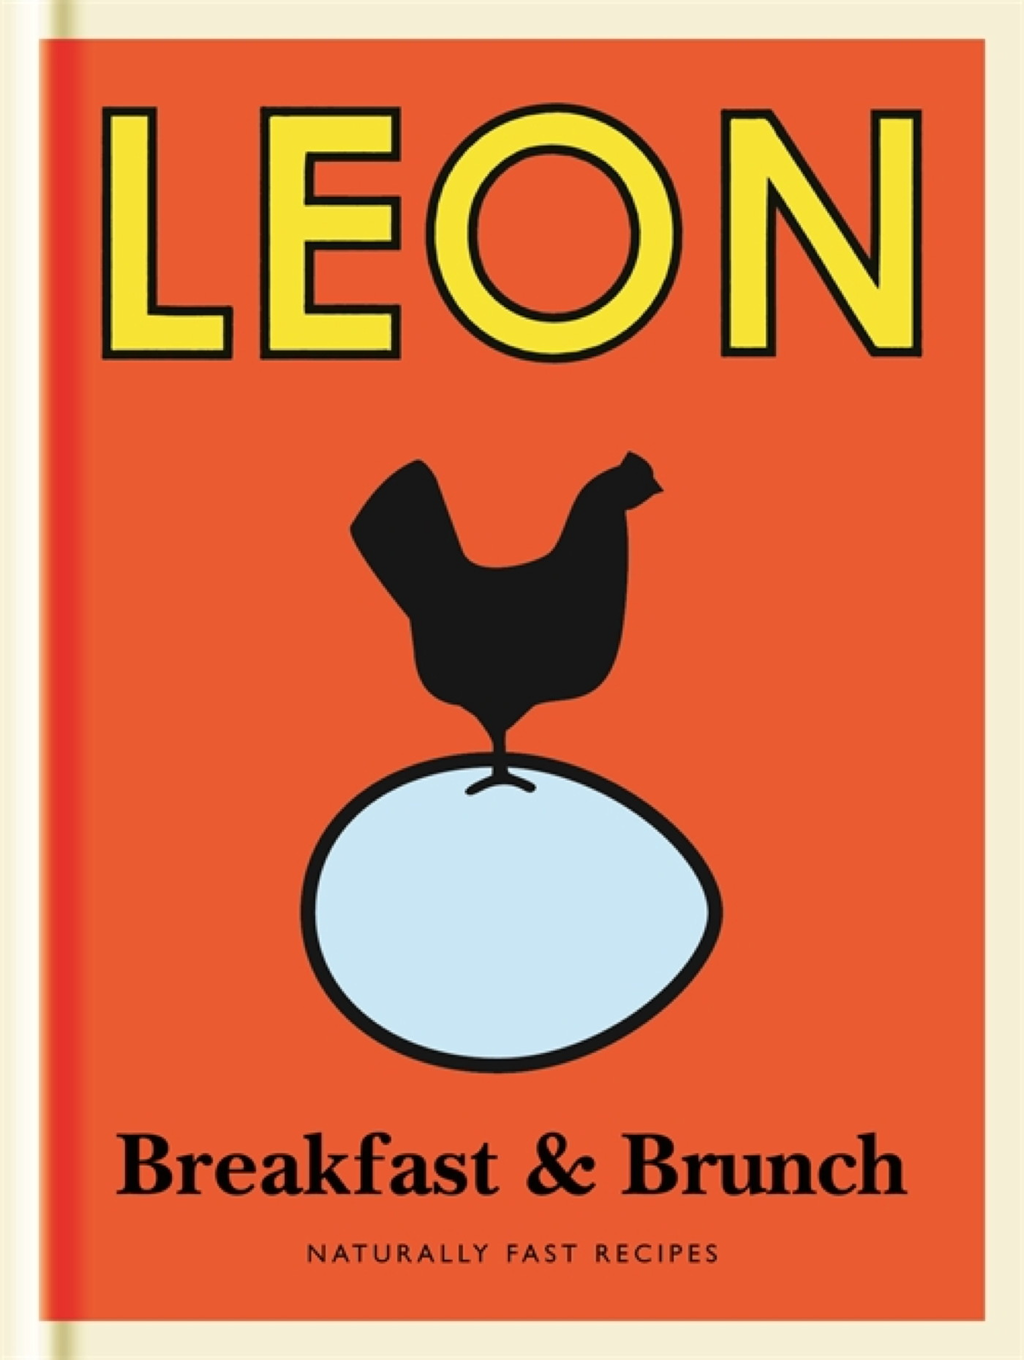 Leon Breakfast & Brunch (Little Leons) Recipes for healthy eating with quick and simple ideas for breakfast and brunch.